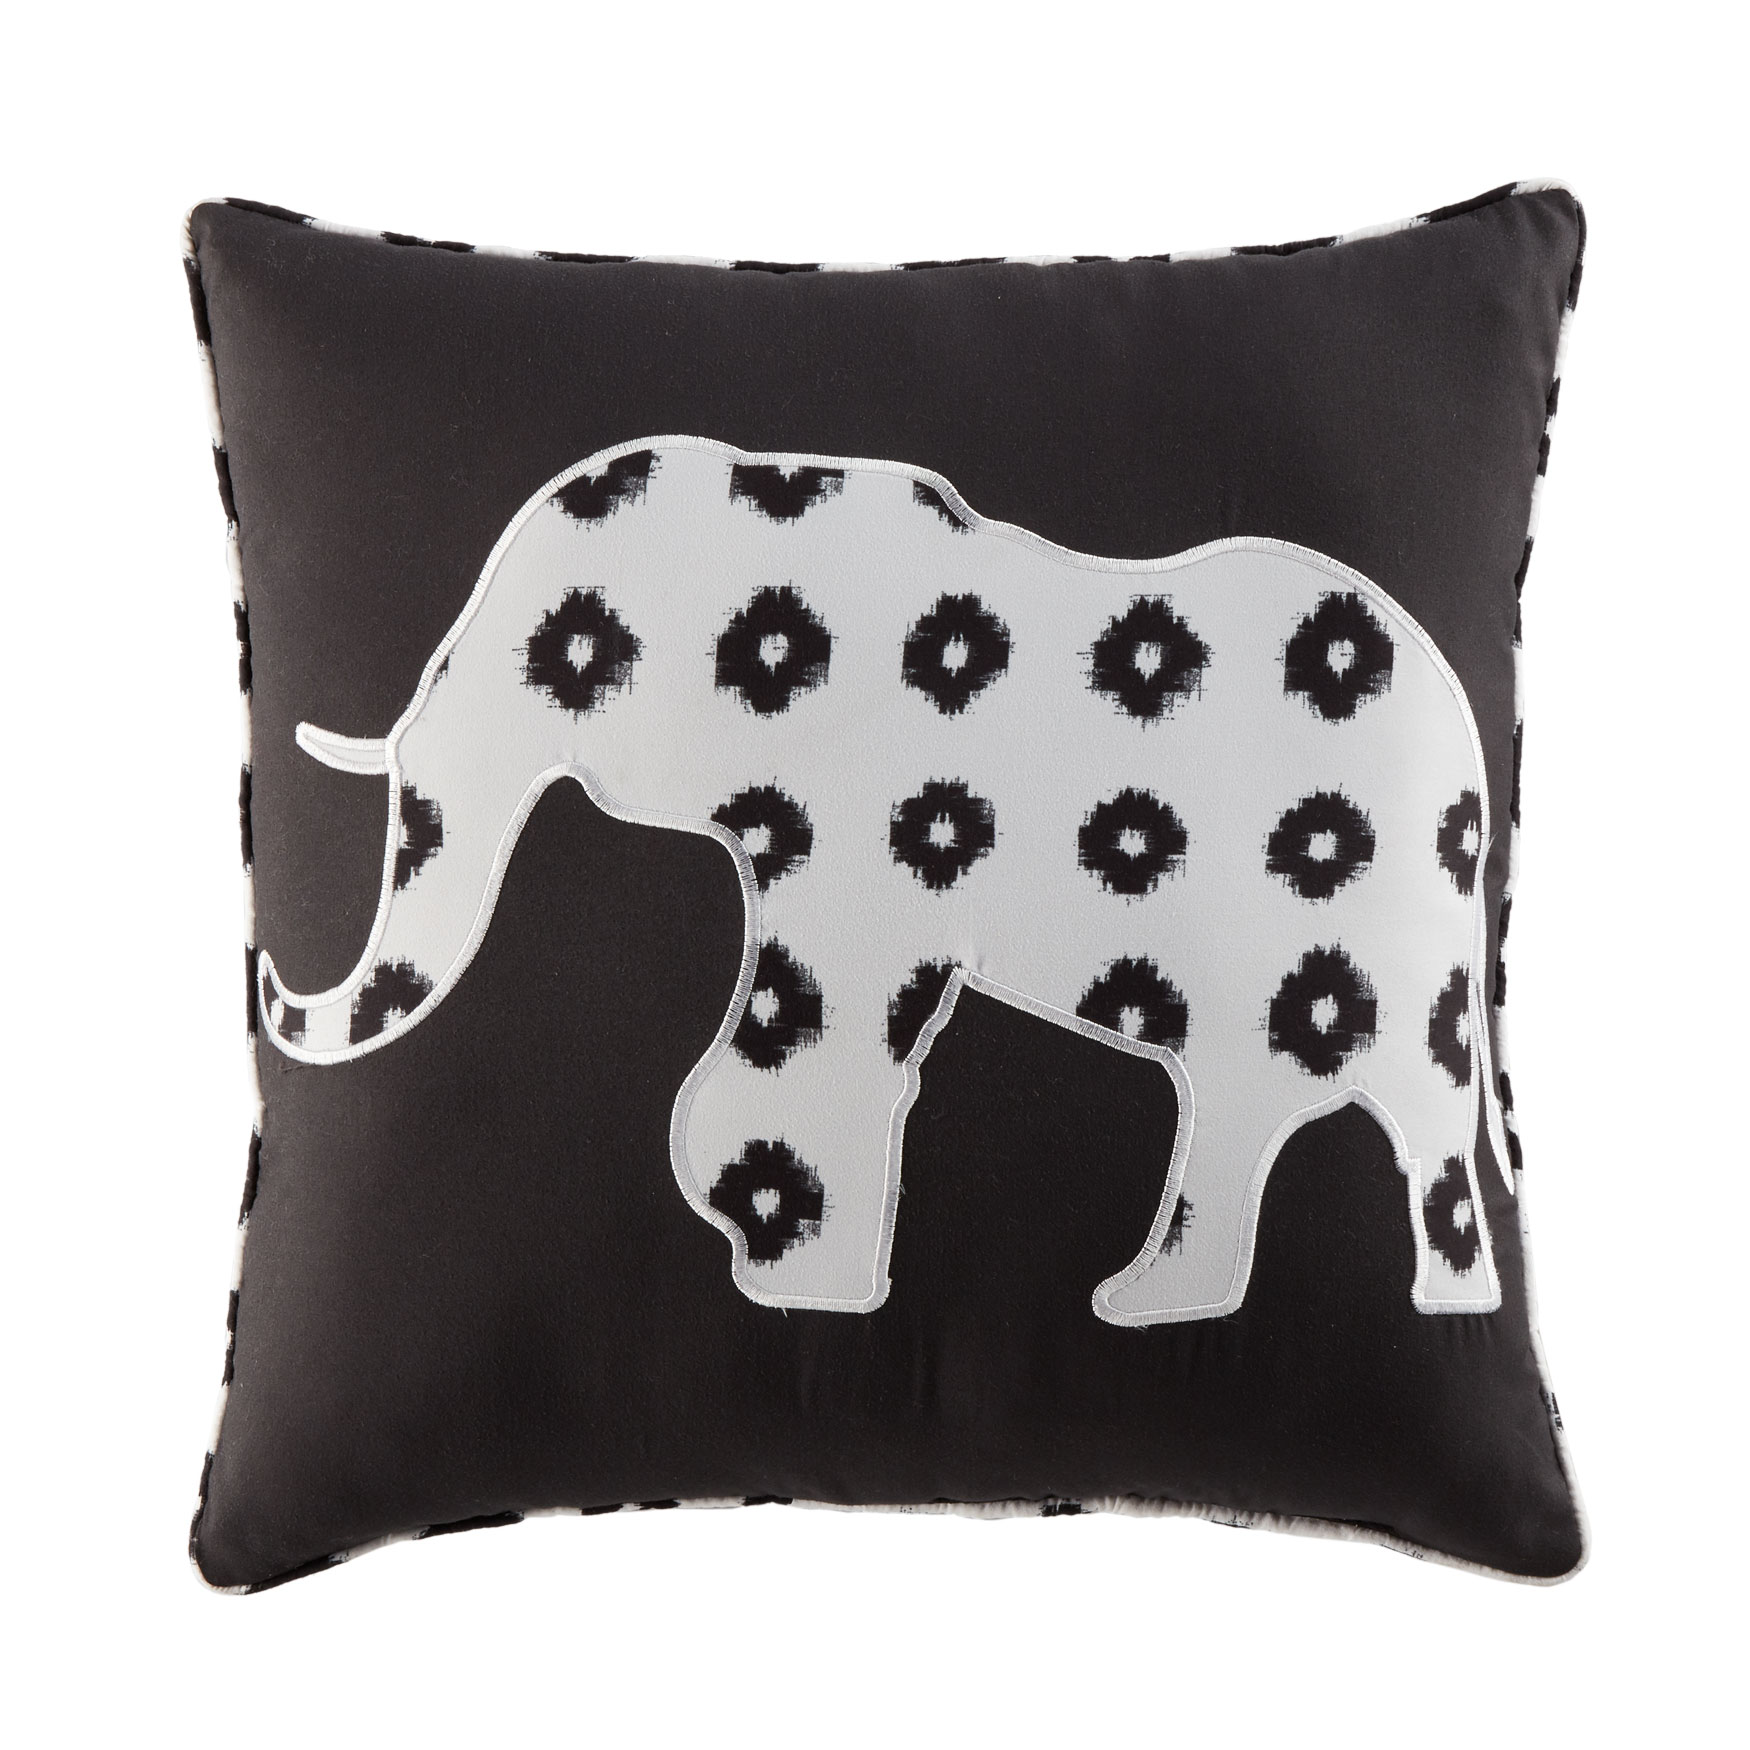 "BrylaneHome® Studio 16"" Decorative Pillow, BLACK WHITE"